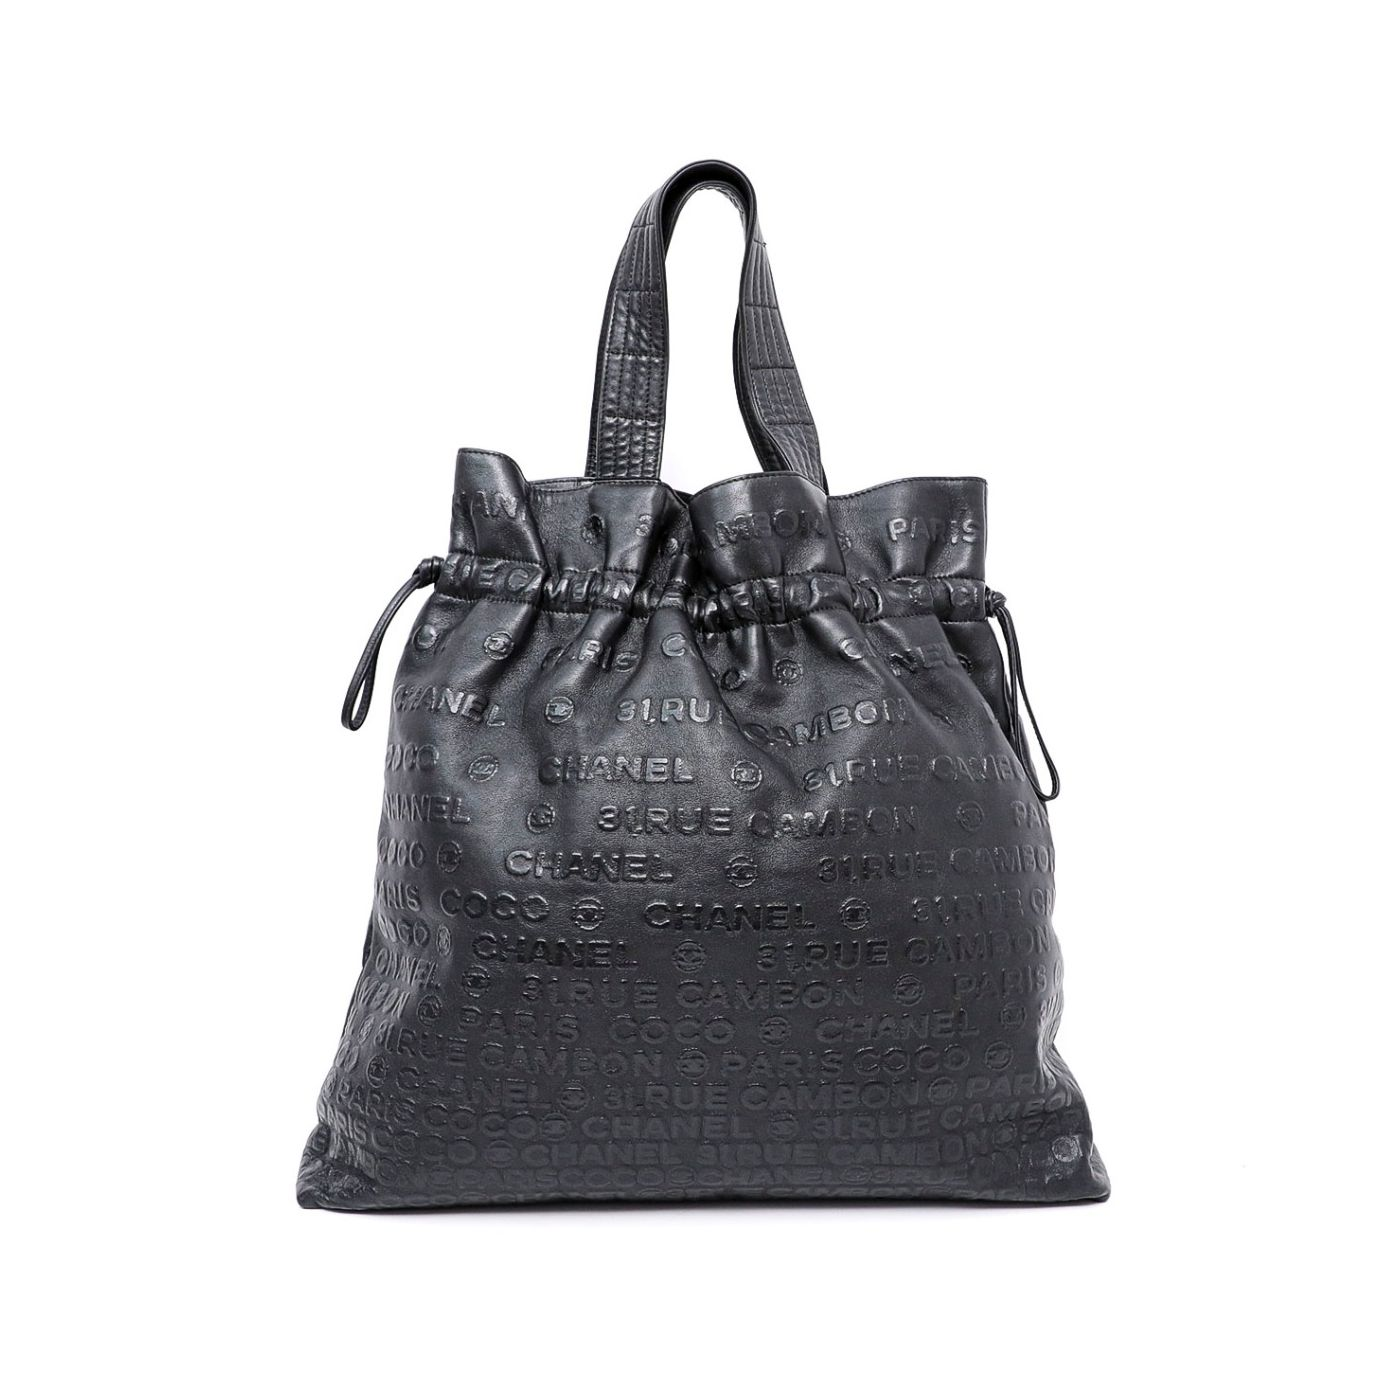 Chanel Black Unlimited Line Drawstring Tote